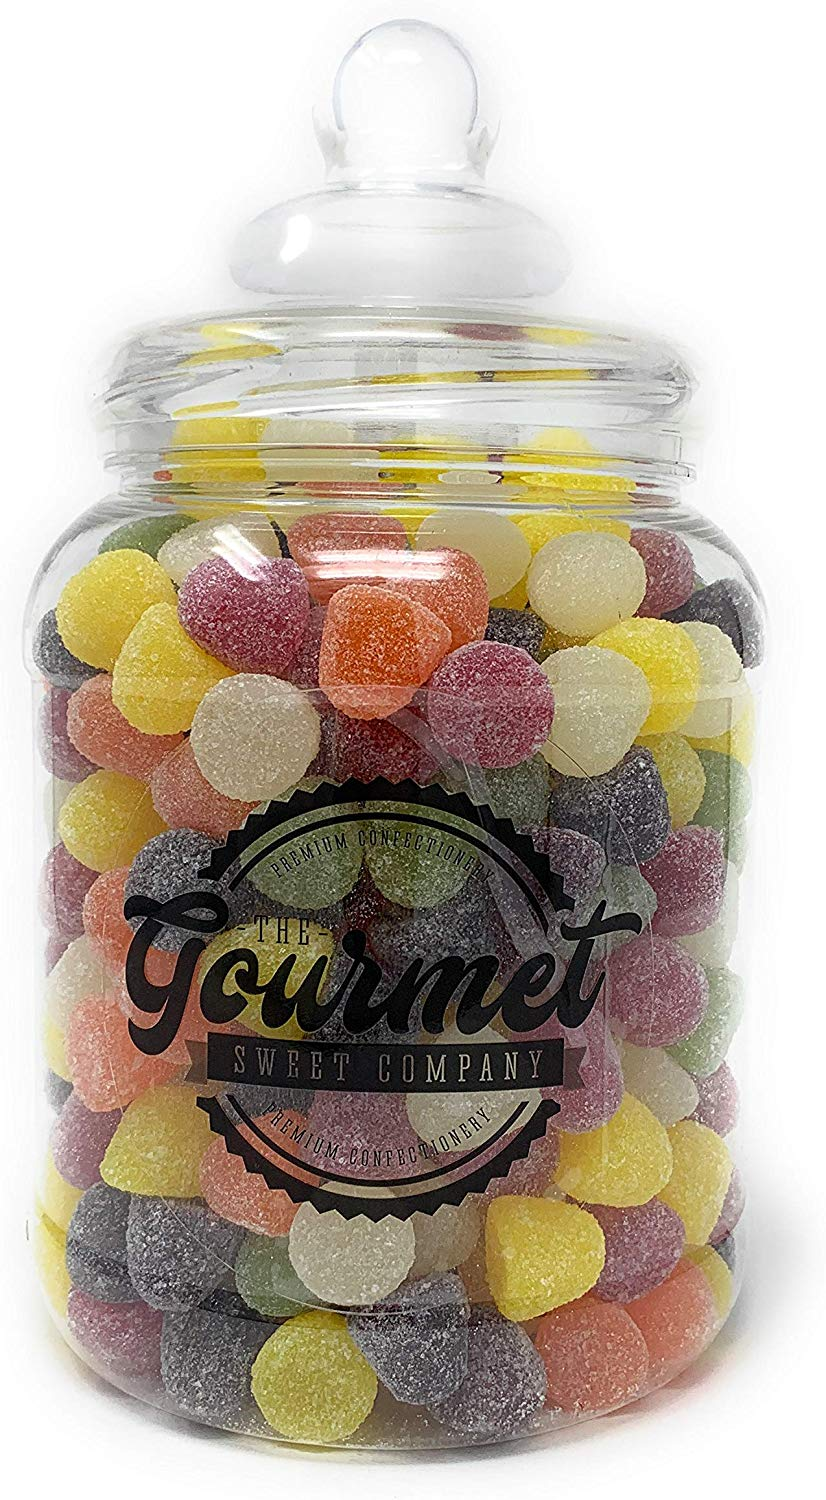 American Hard Gums 1.8kg Retro Sweets Large Victorian Gift Jar